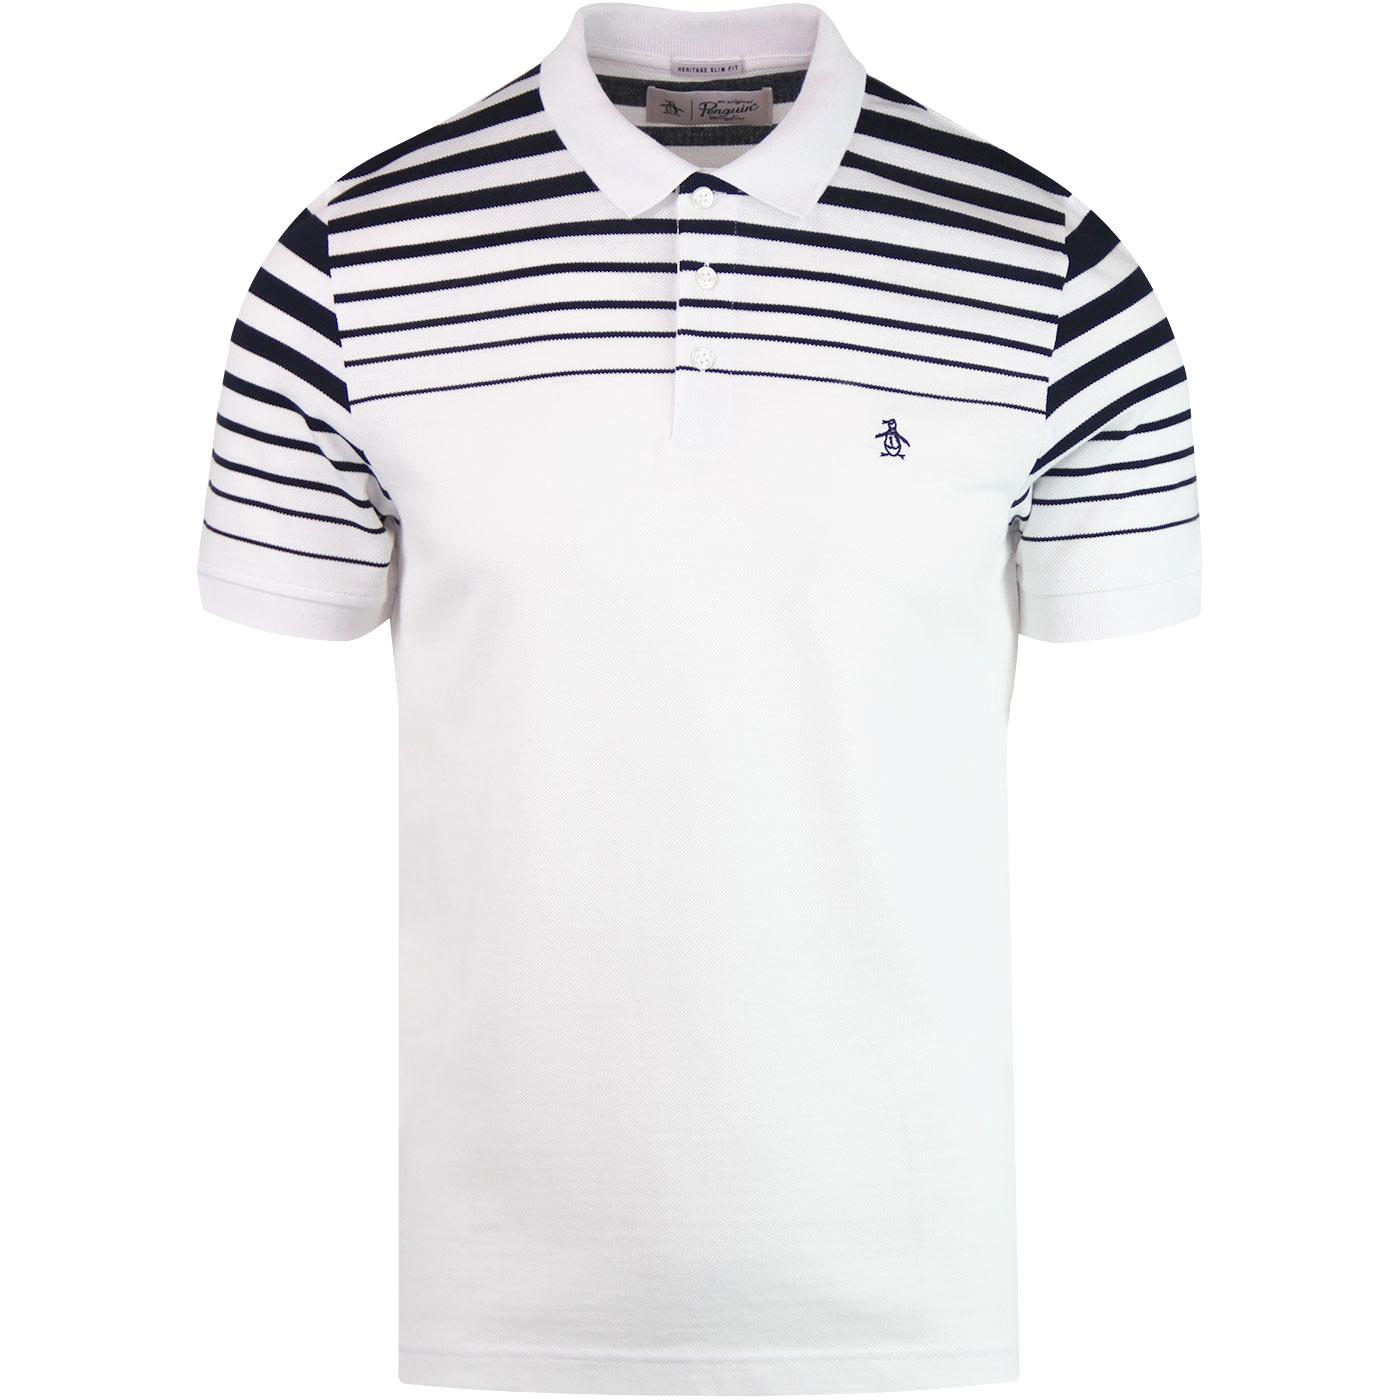 ORIGINAL PENGUIN Retro Gradient Stripe Polo WHITE